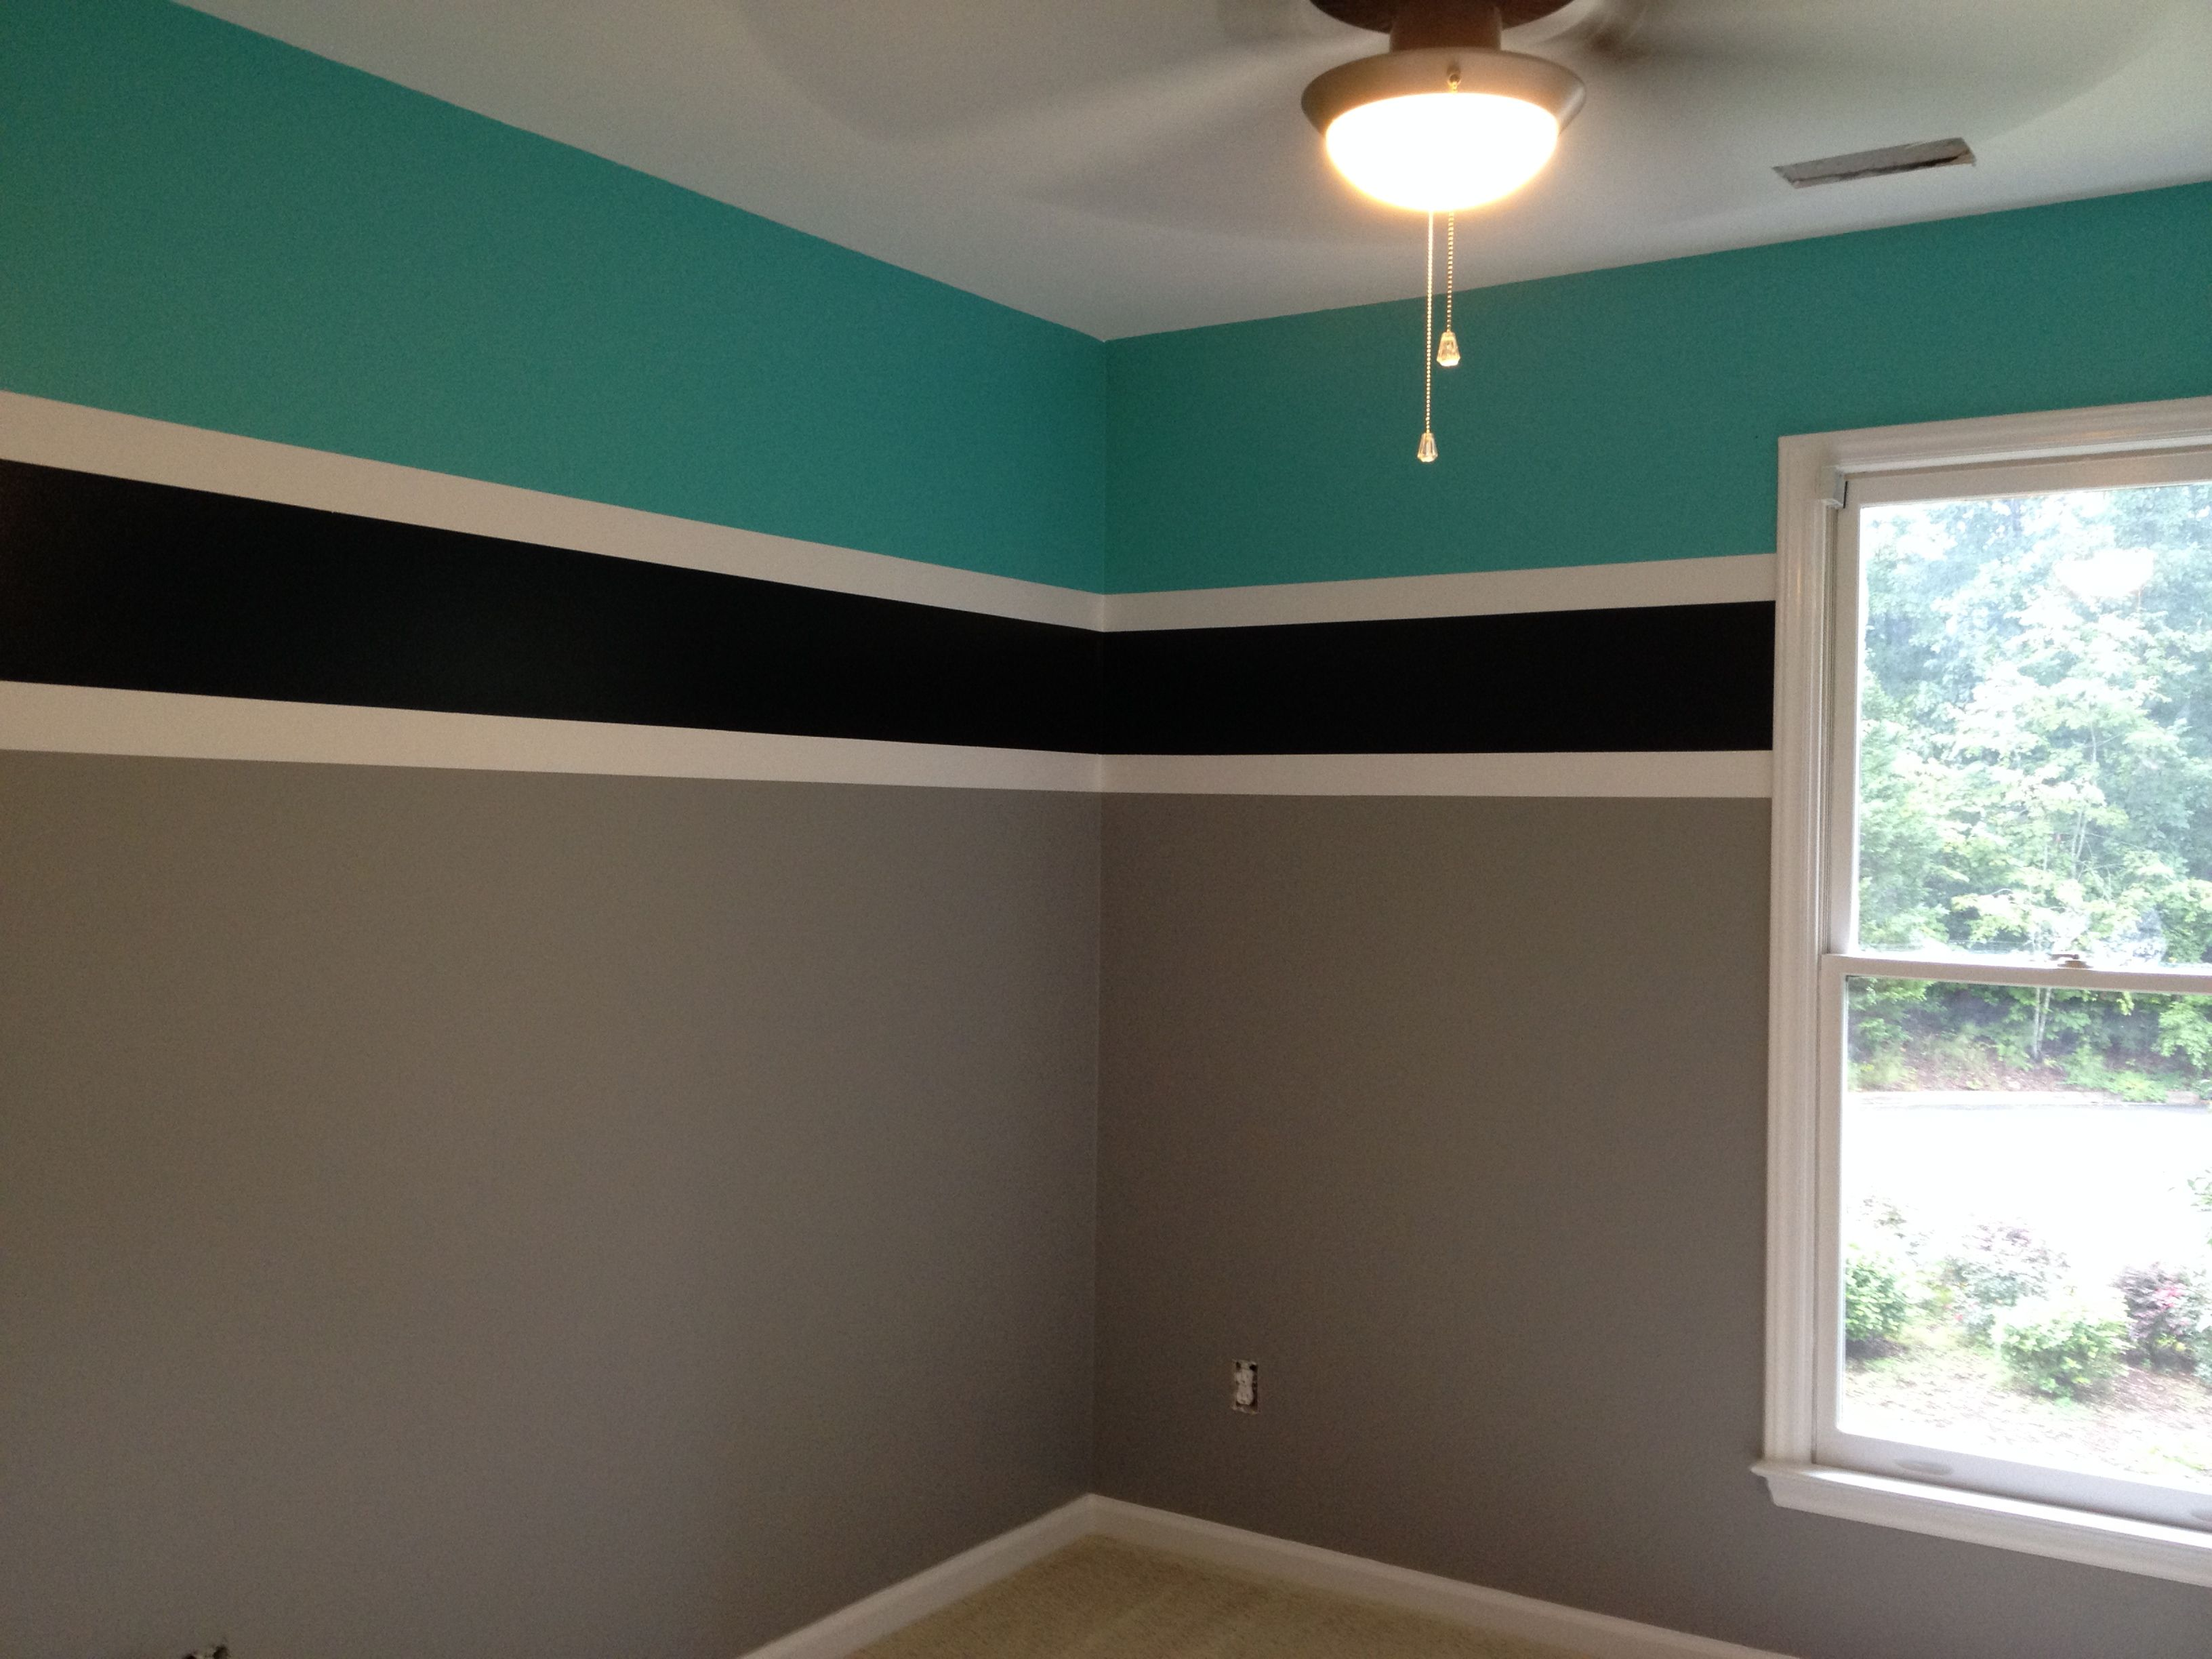 Painting room ideas for teens - Wall Painting Ideas For Teenagers Boy Final Product Teenage Boys Room Colors For A Swimmer